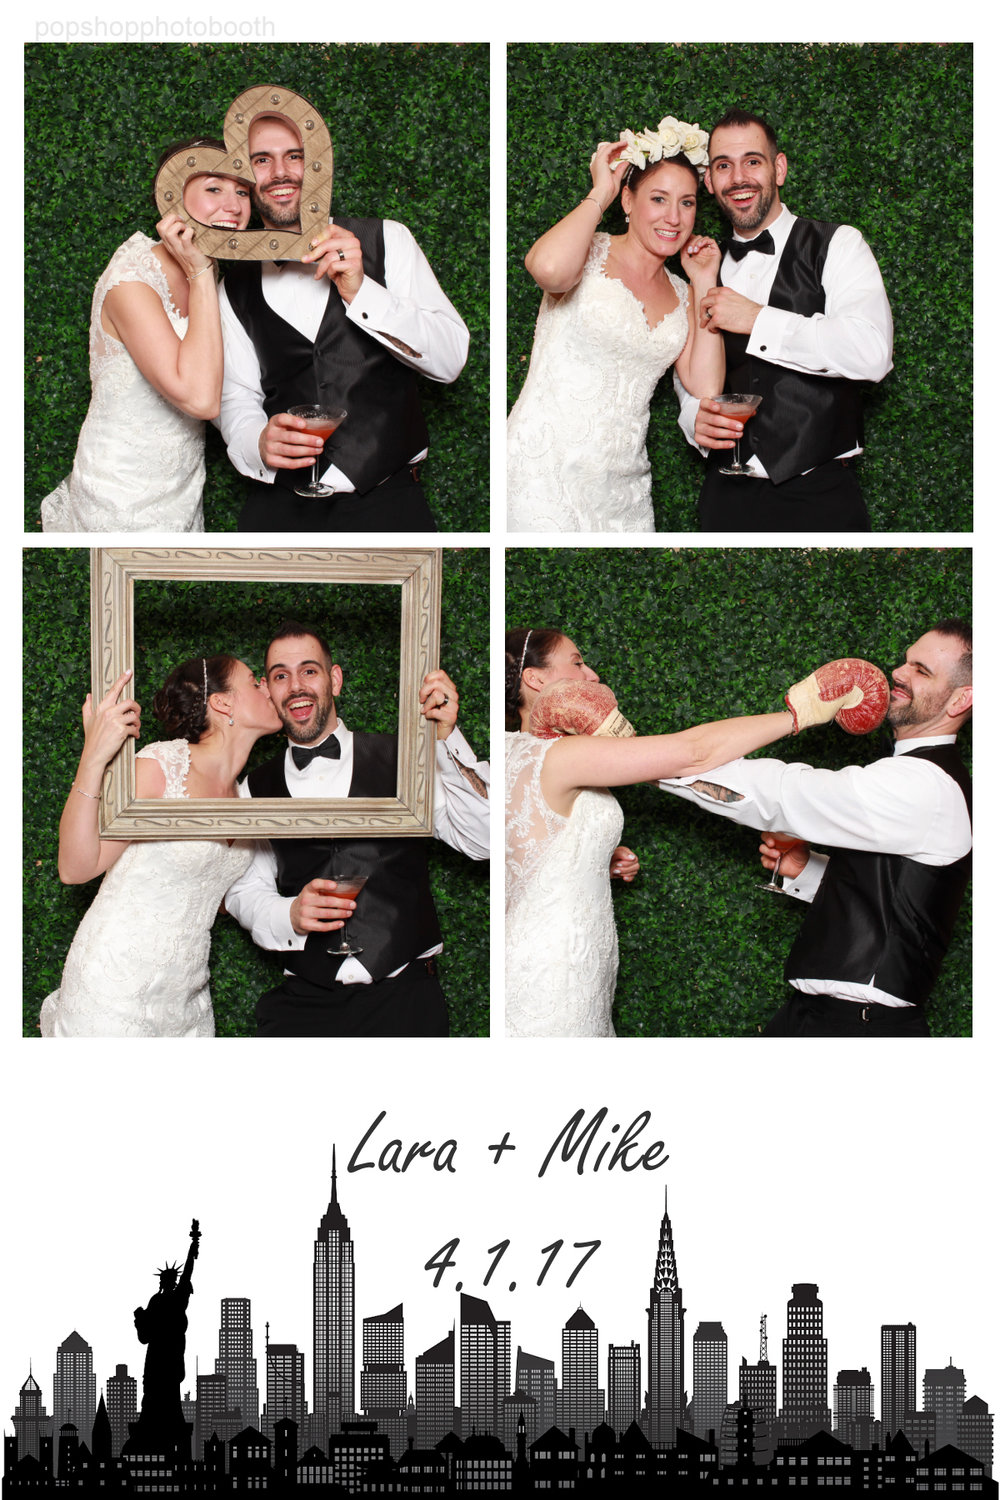 Lara and Mike April 1, 2017